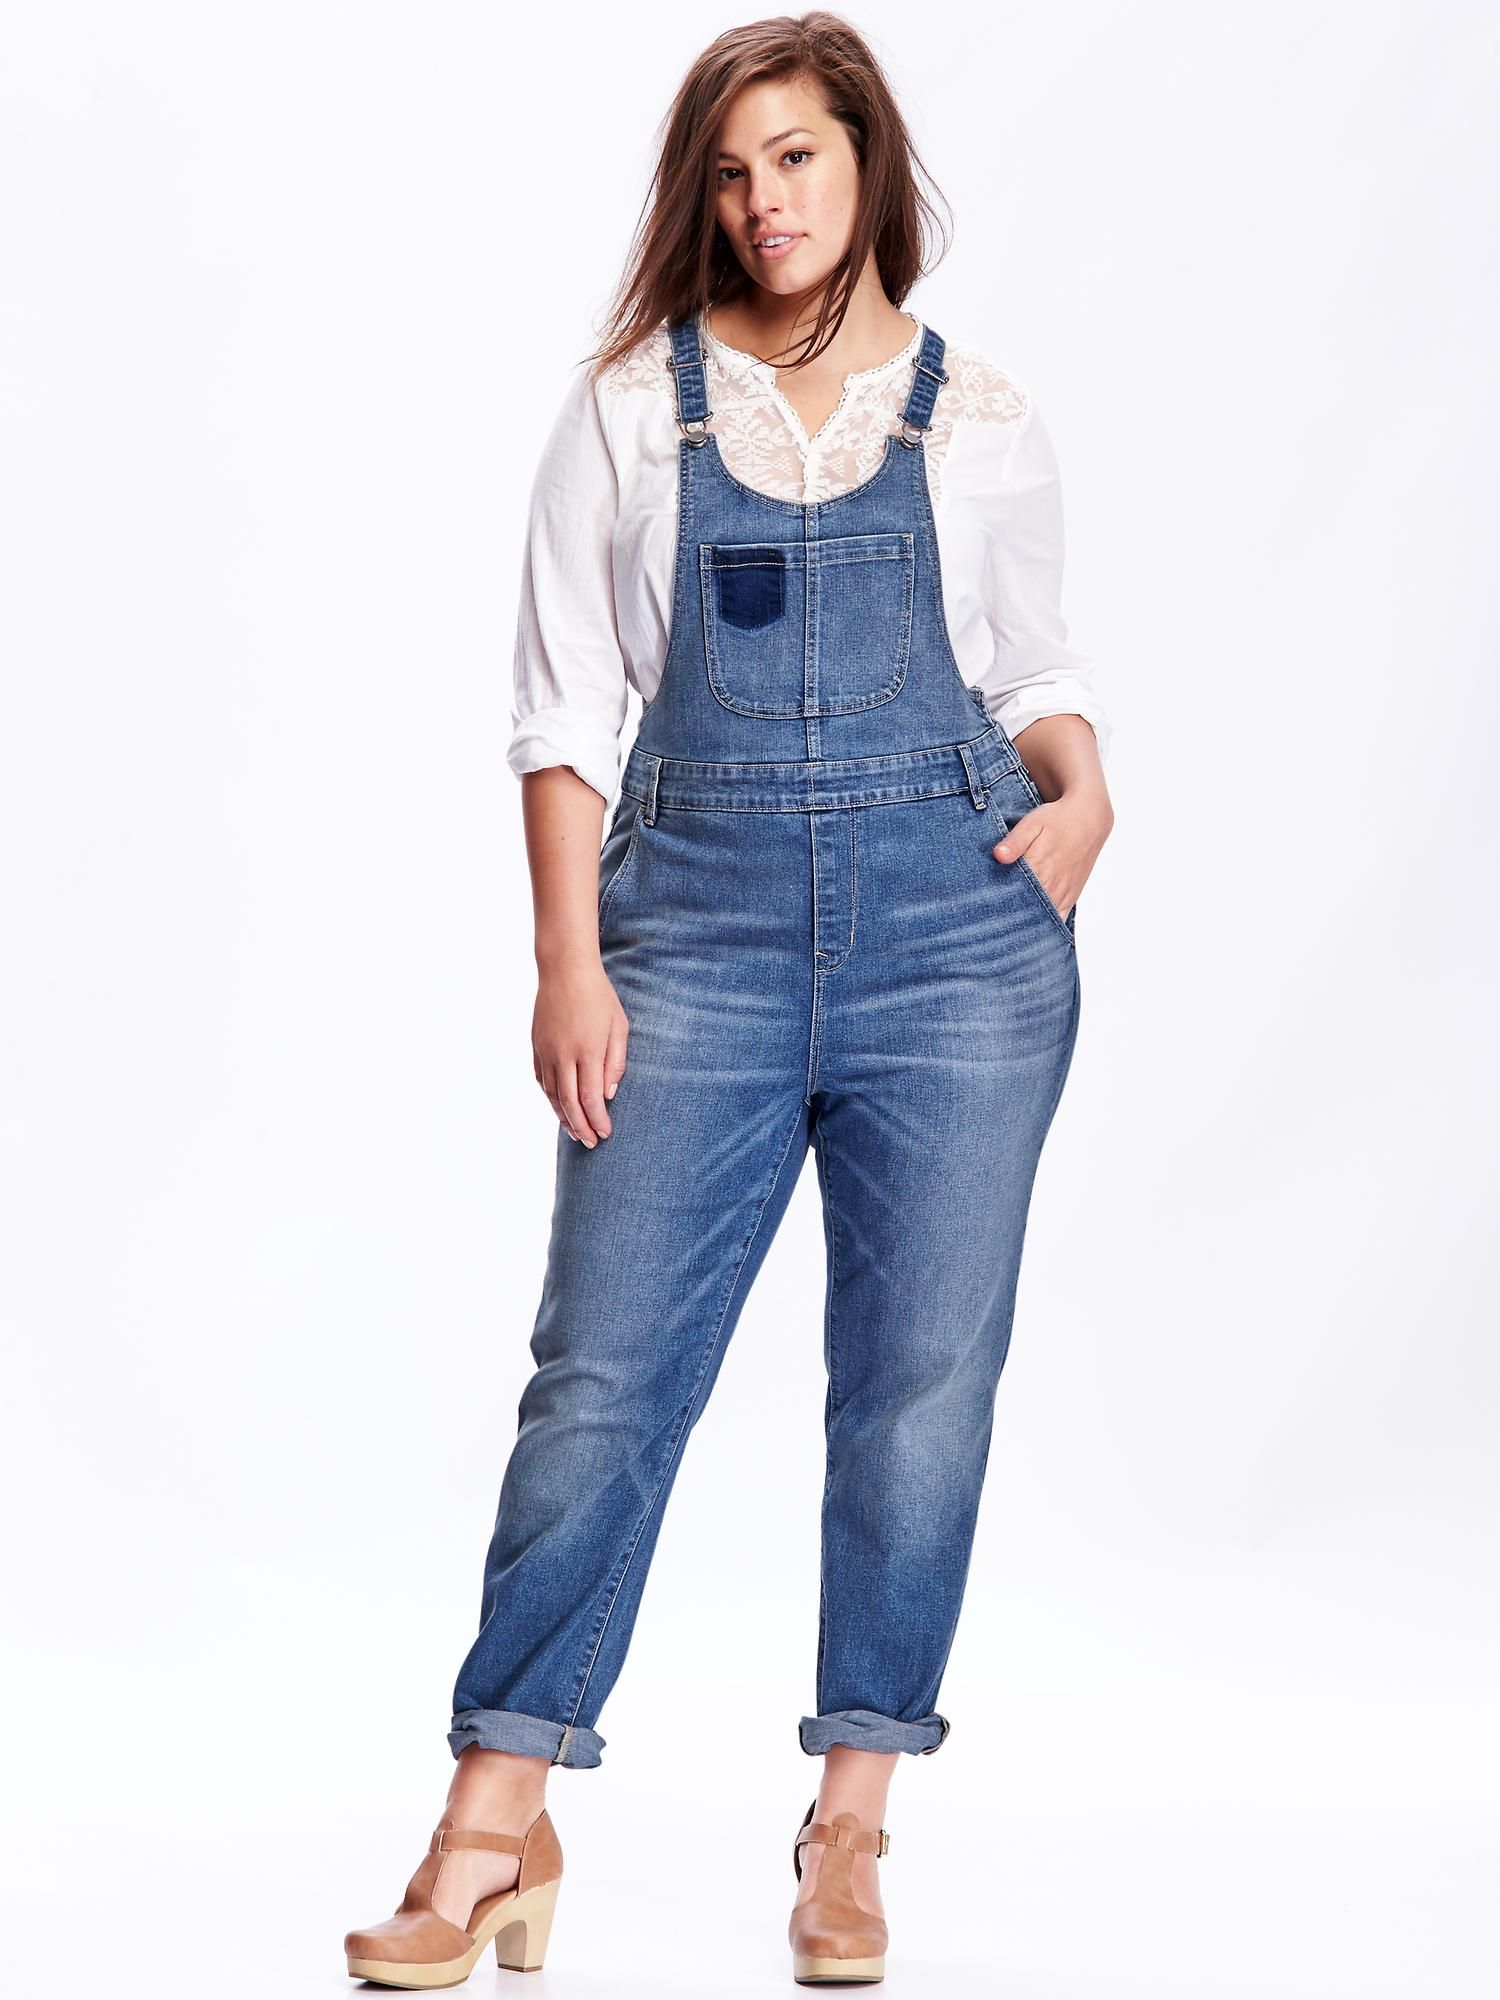 product zoom Womens Denim Overalls, Denim Romper, Overalls Outfit, Jean  Shorts, Moda 8bd9f8d81c